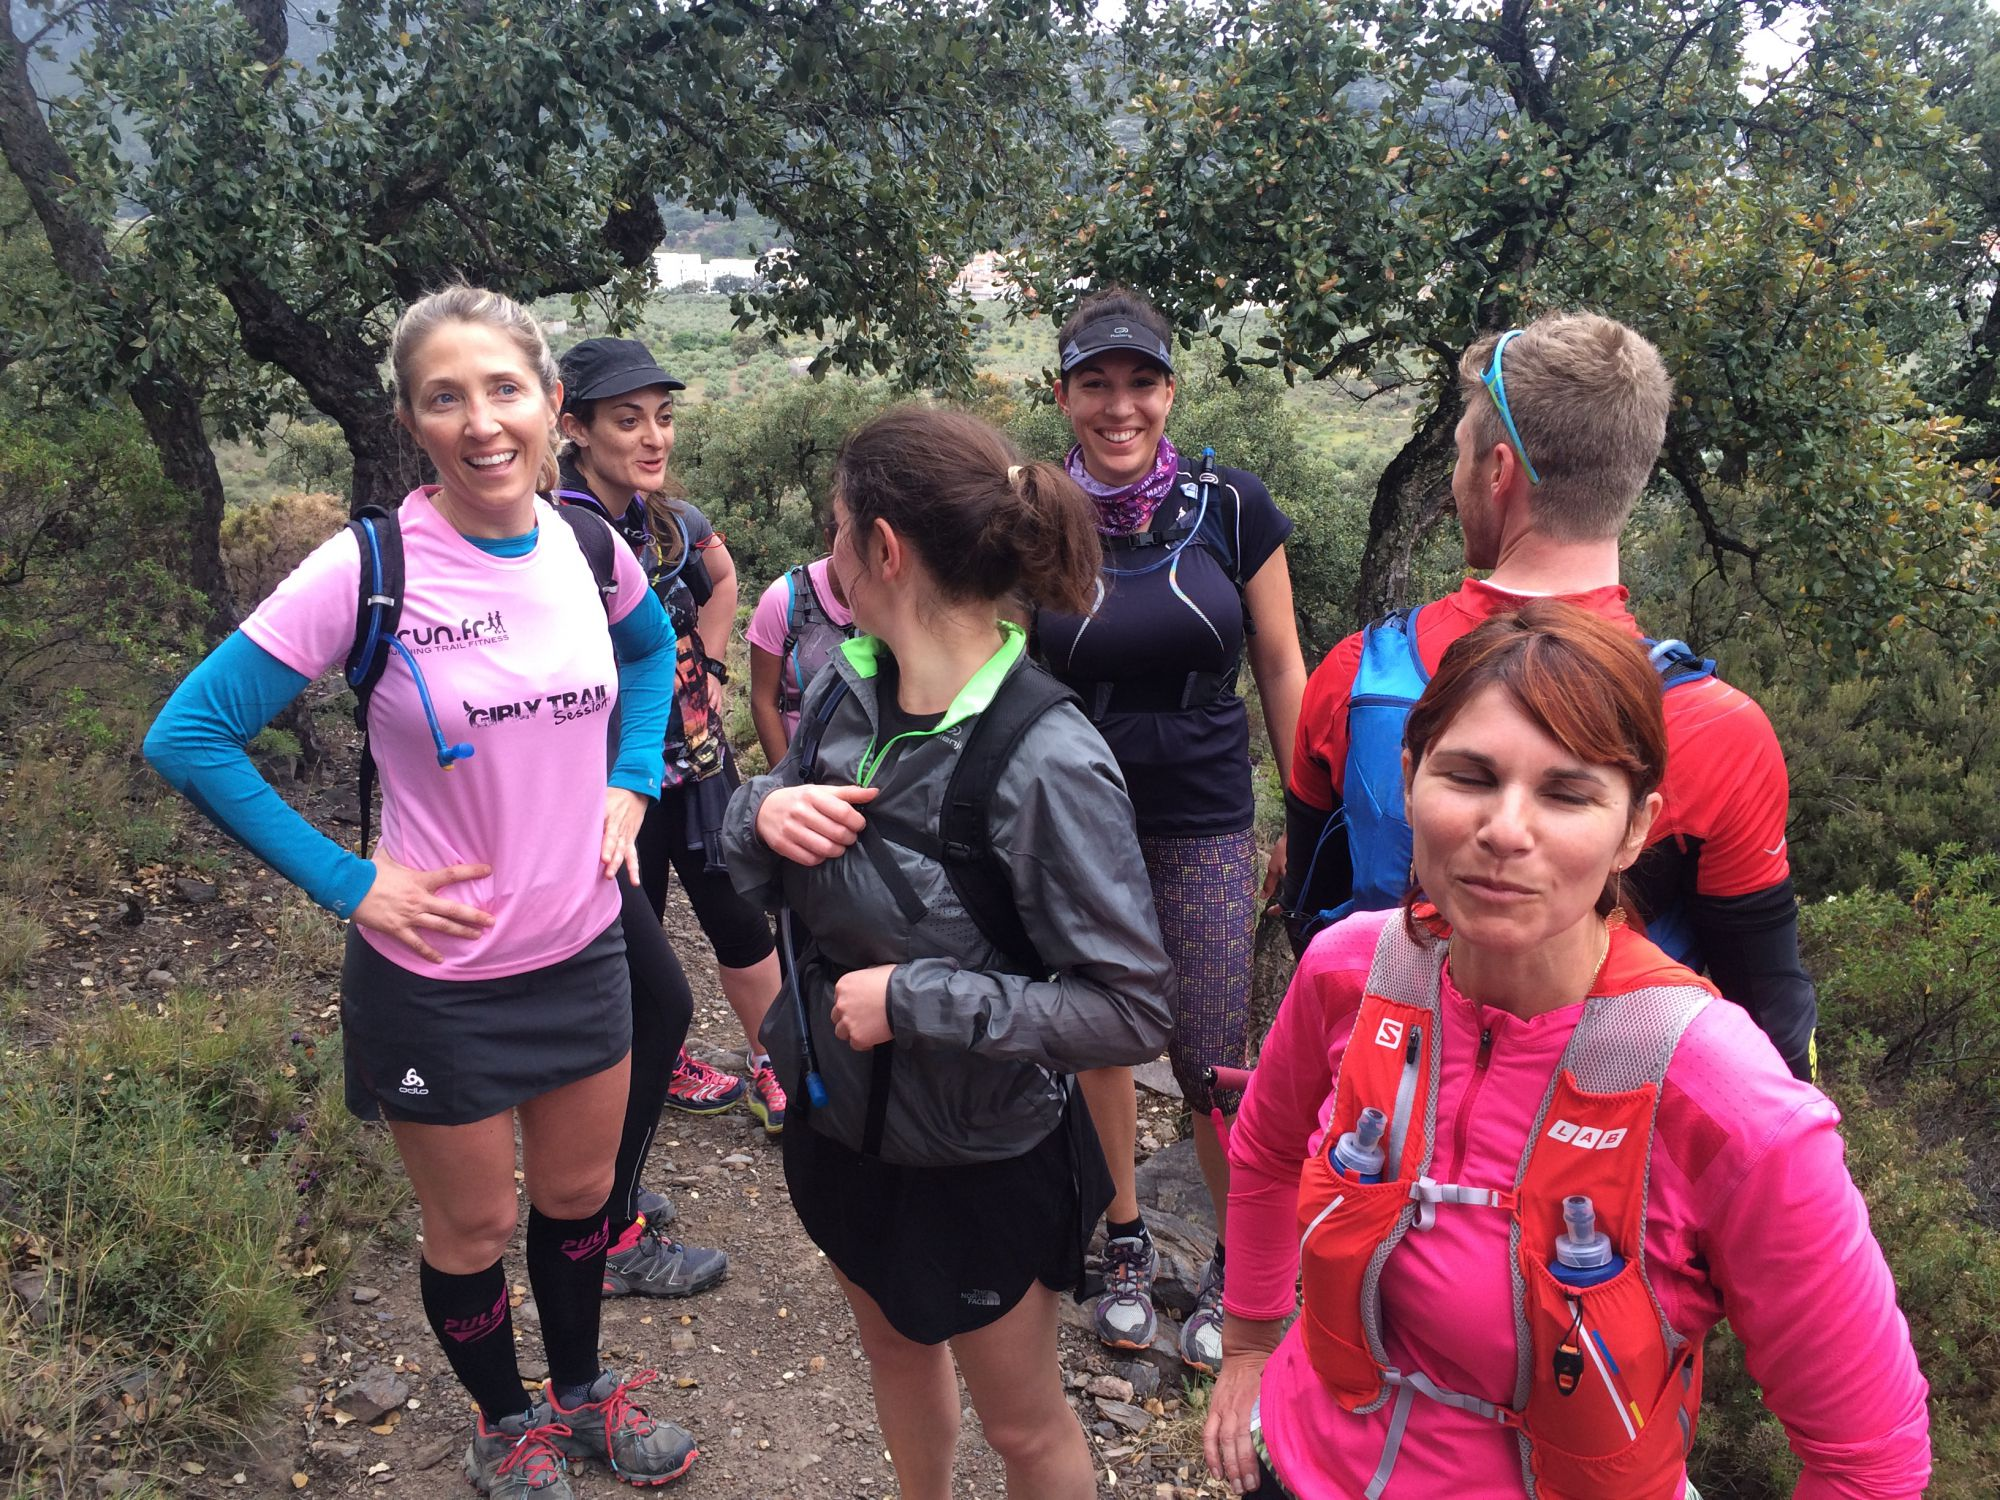 week-end-girly-trail-session-6